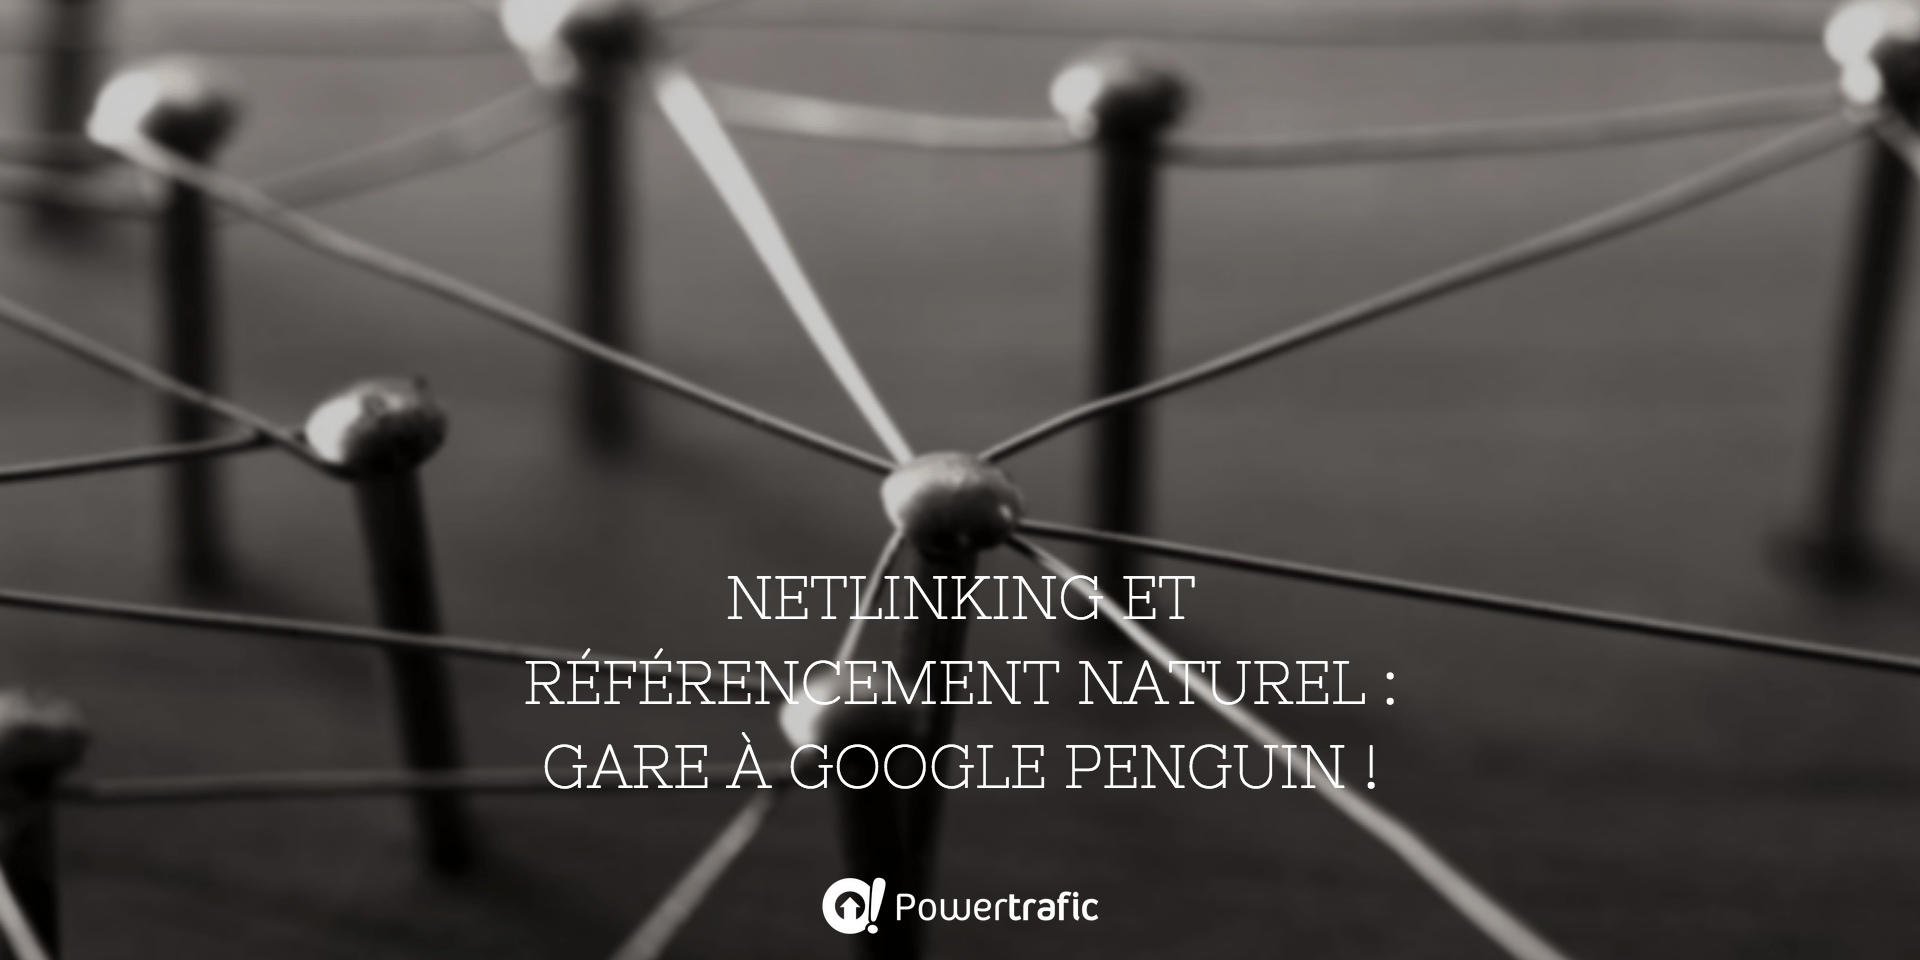 https://www.powertrafic.fr/netlinking-google-penguin/